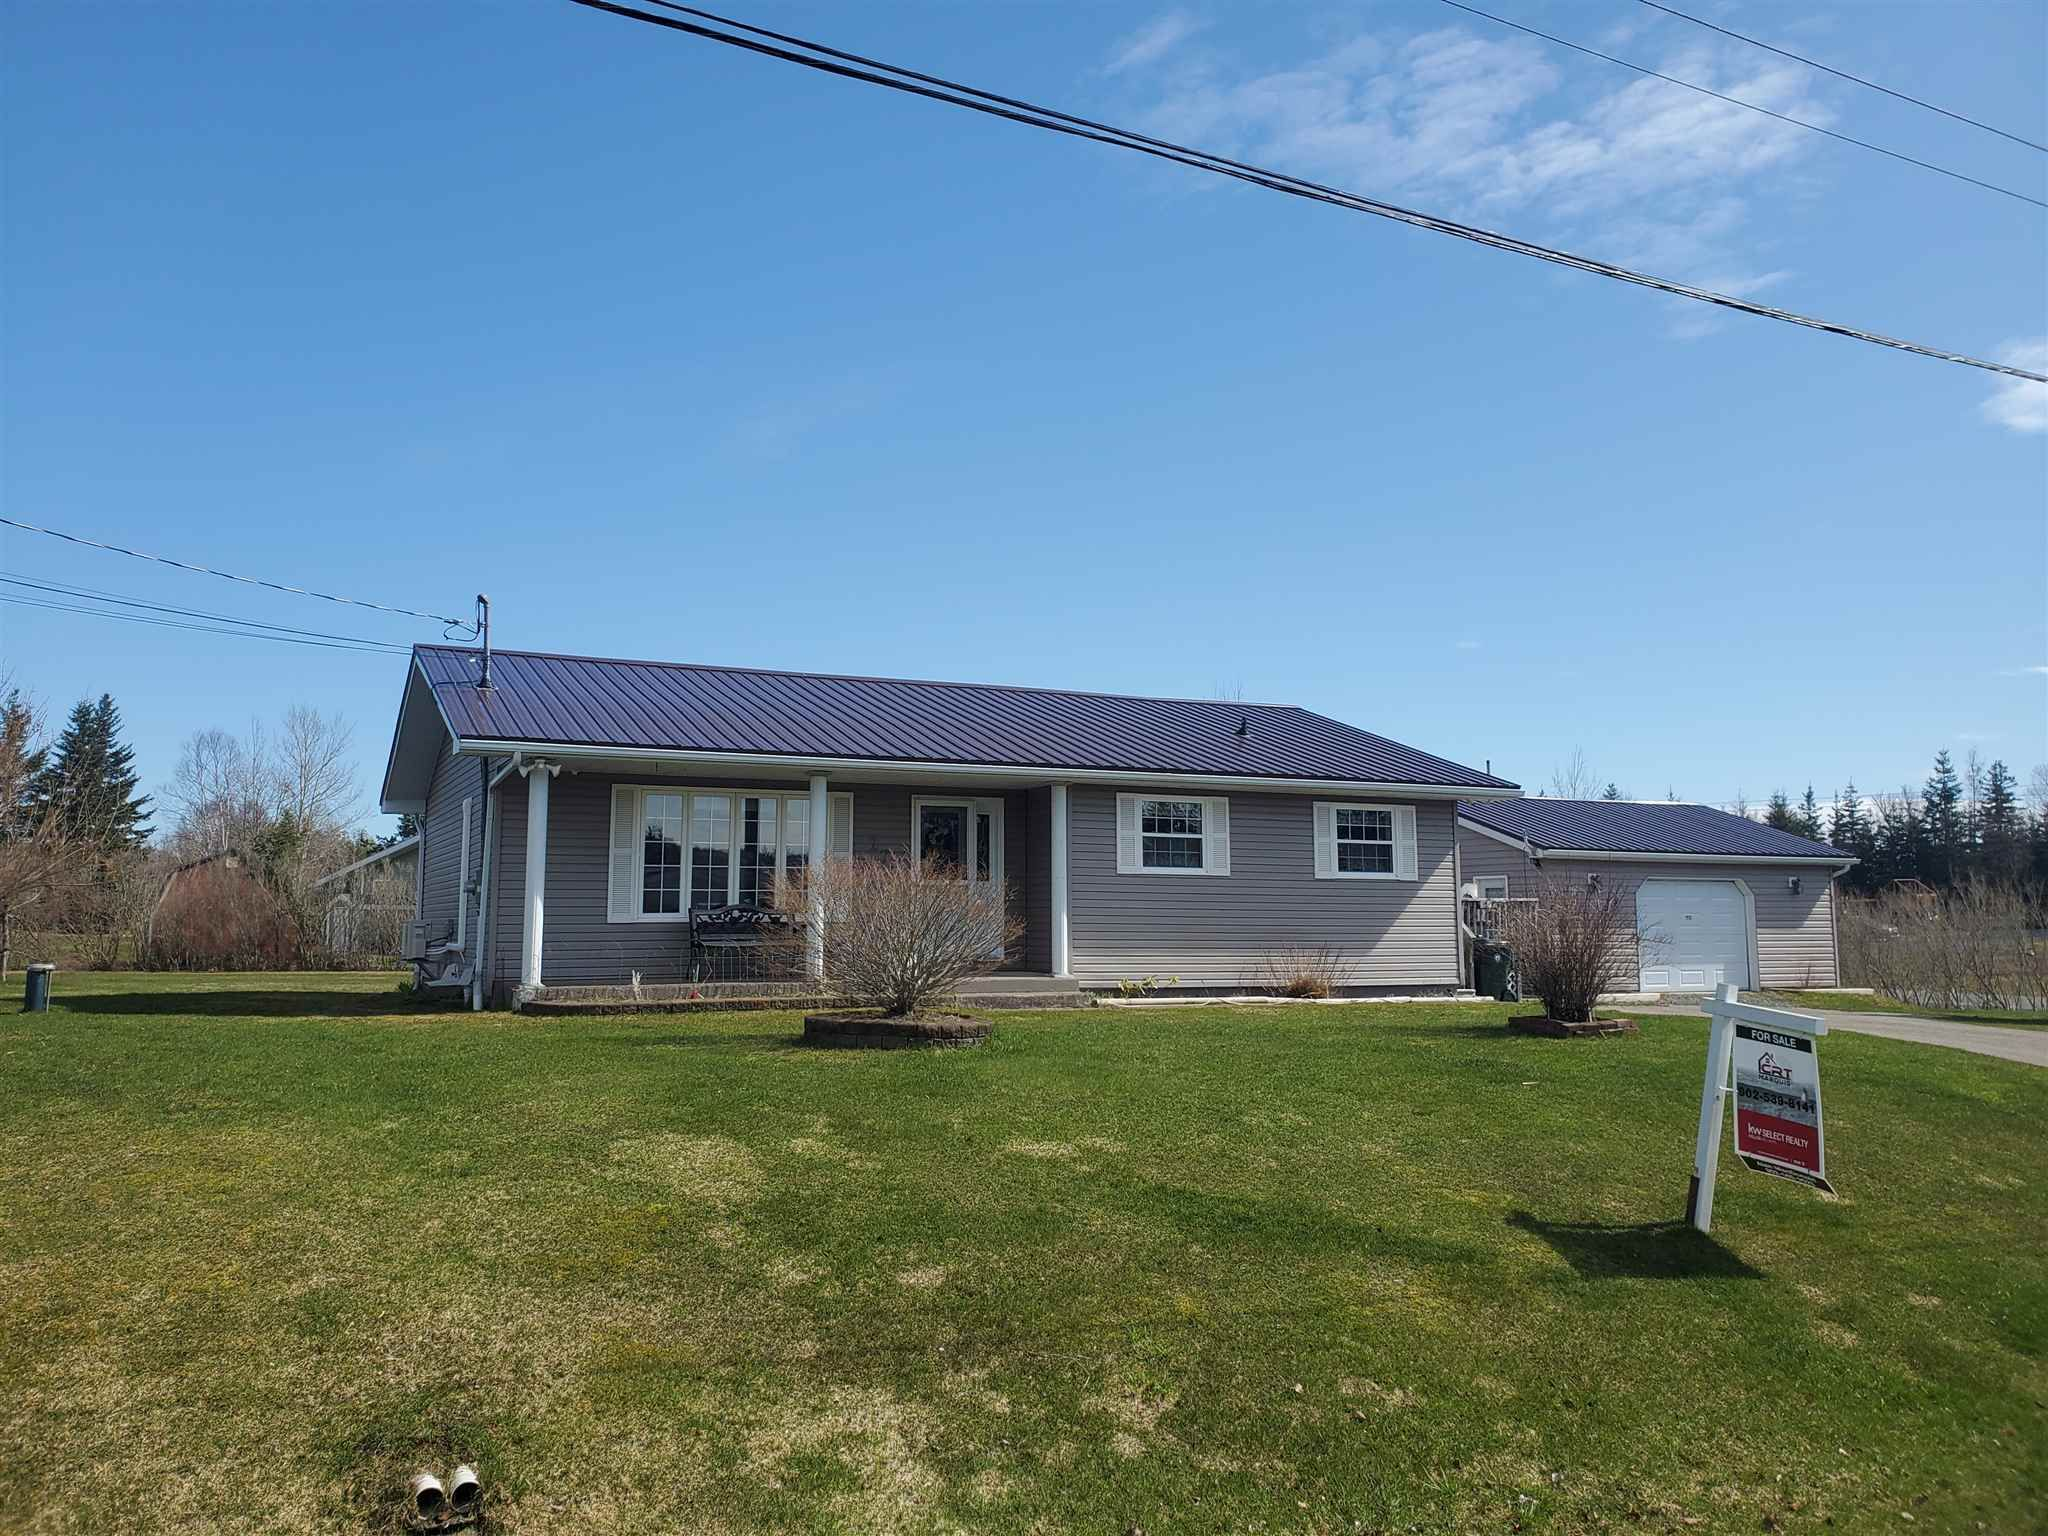 Main Photo: 27 Layton Drive in Howie Centre: 202-Sydney River / Coxheath Residential for sale (Cape Breton)  : MLS®# 202108872